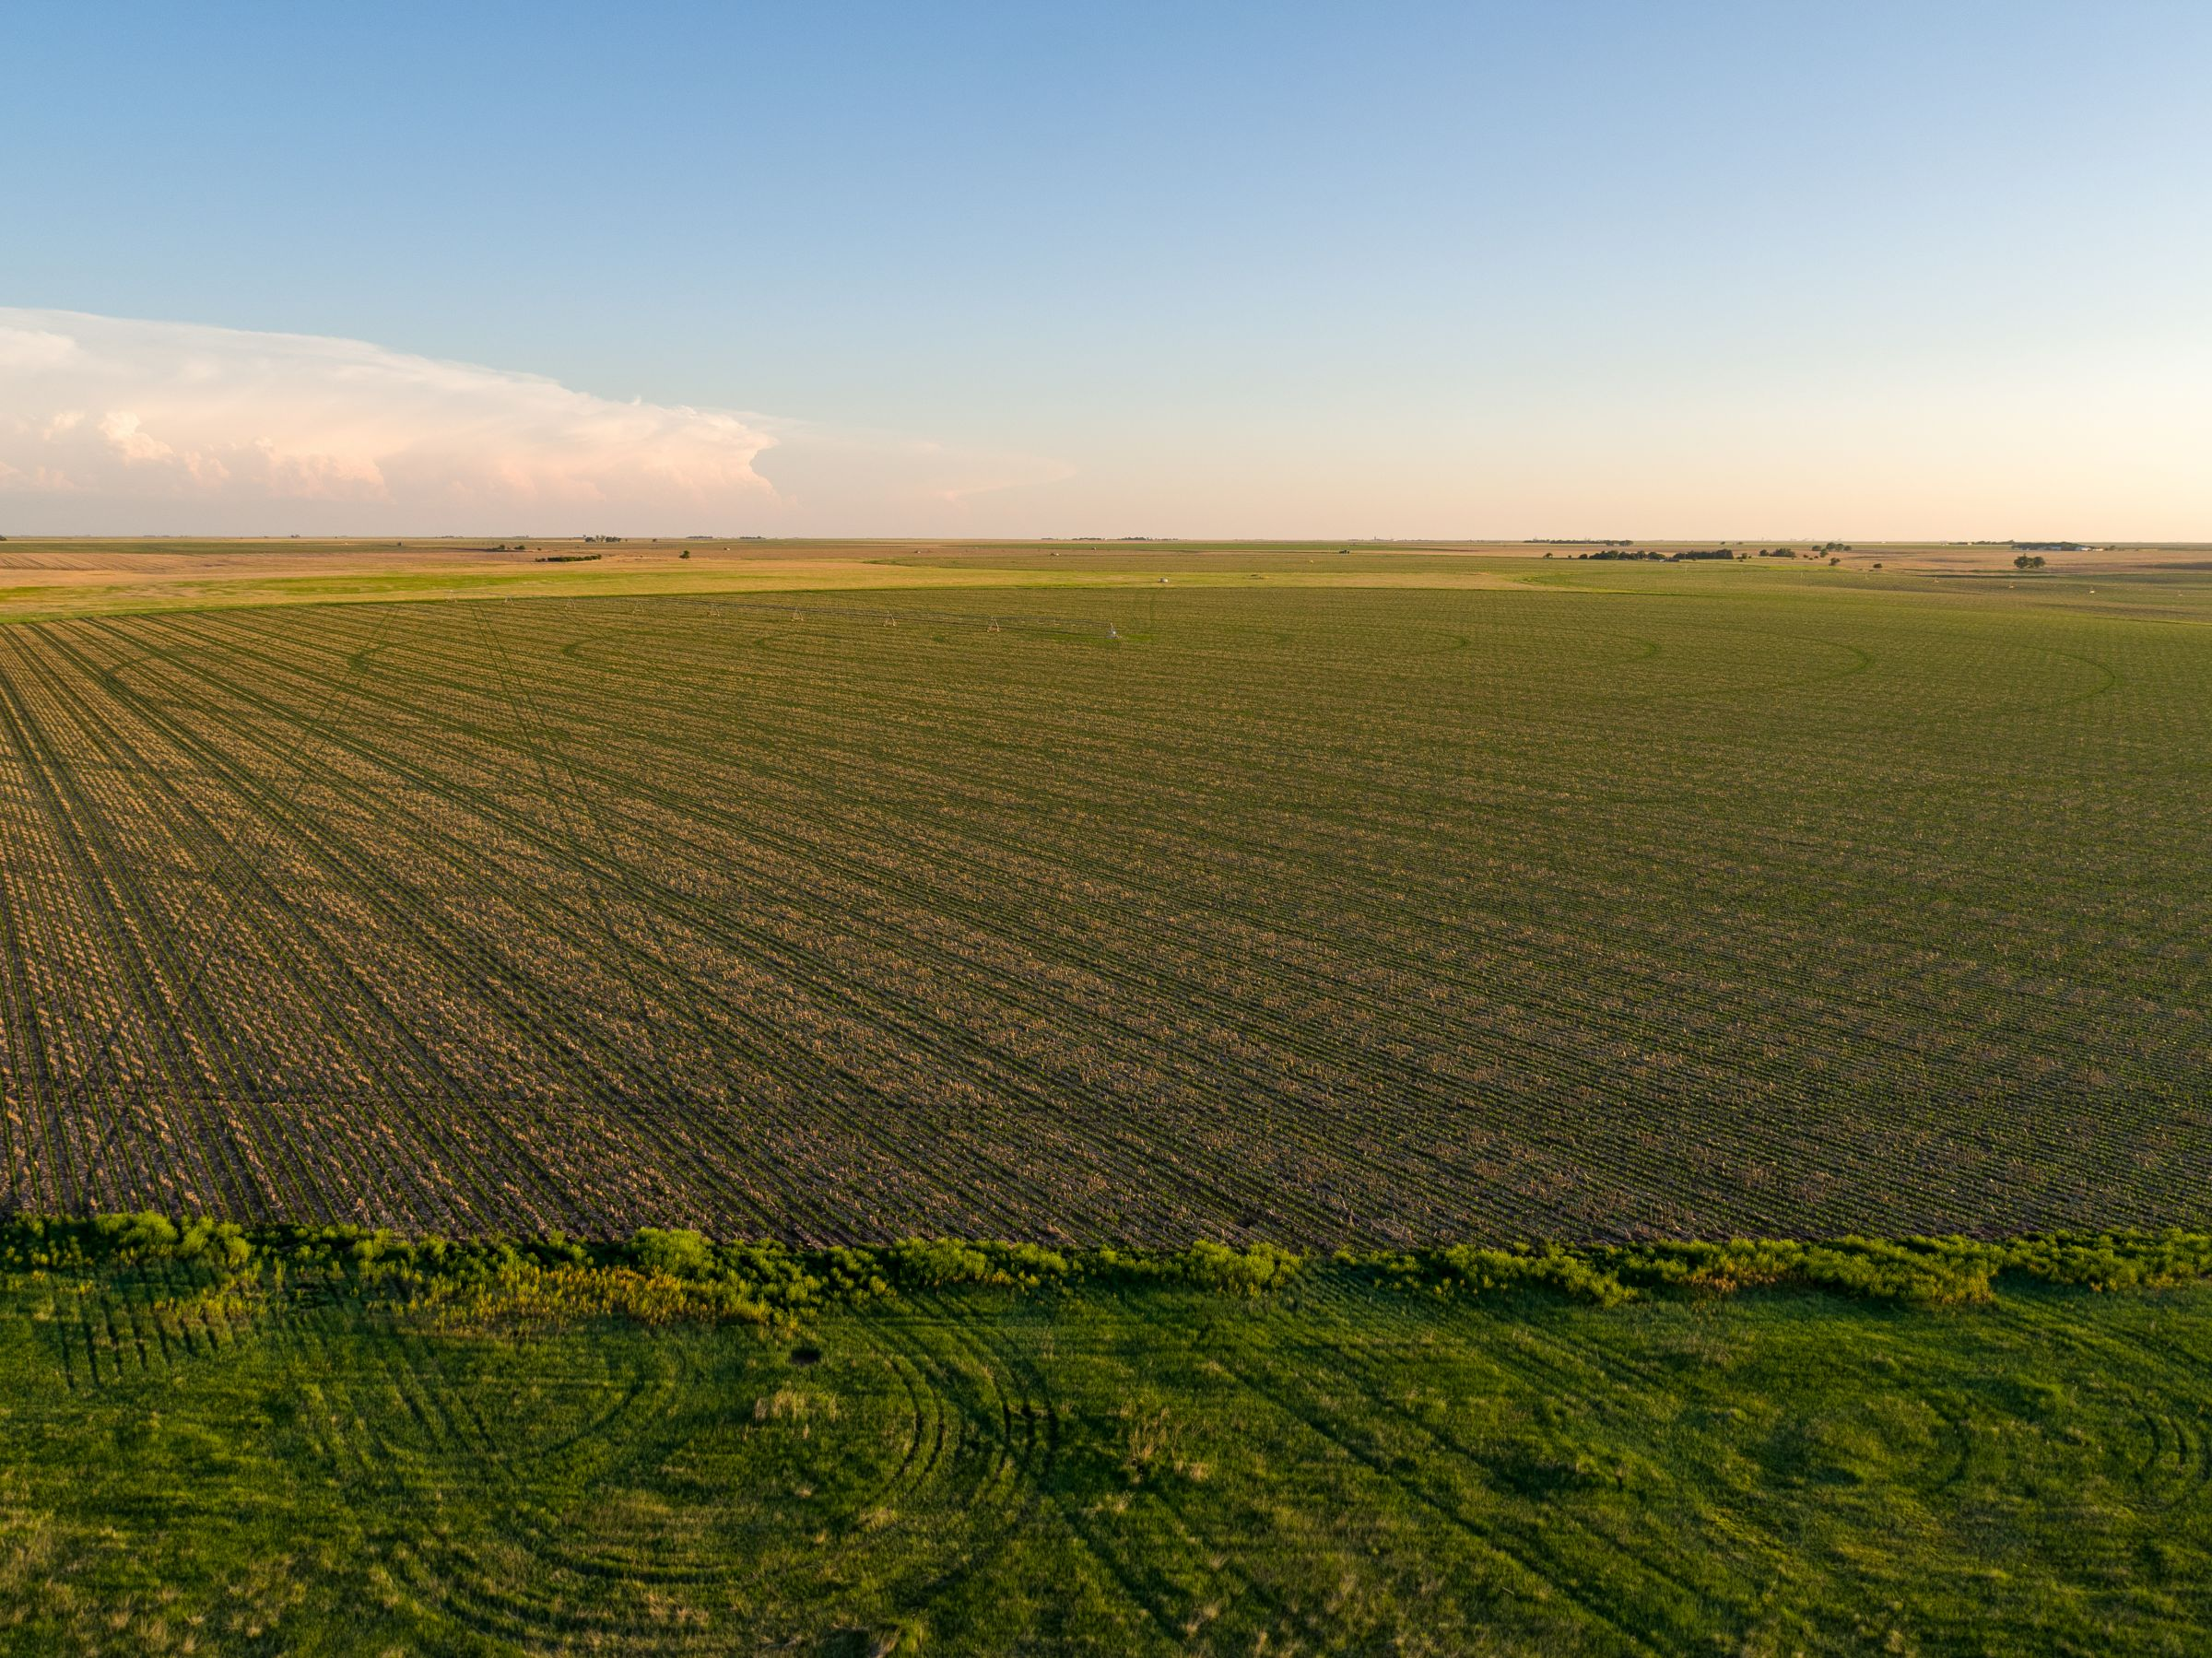 auctions-gray-haskell-county-kansas-2990-acres-listing-number-15570-0-2021-06-11-184112.jpeg